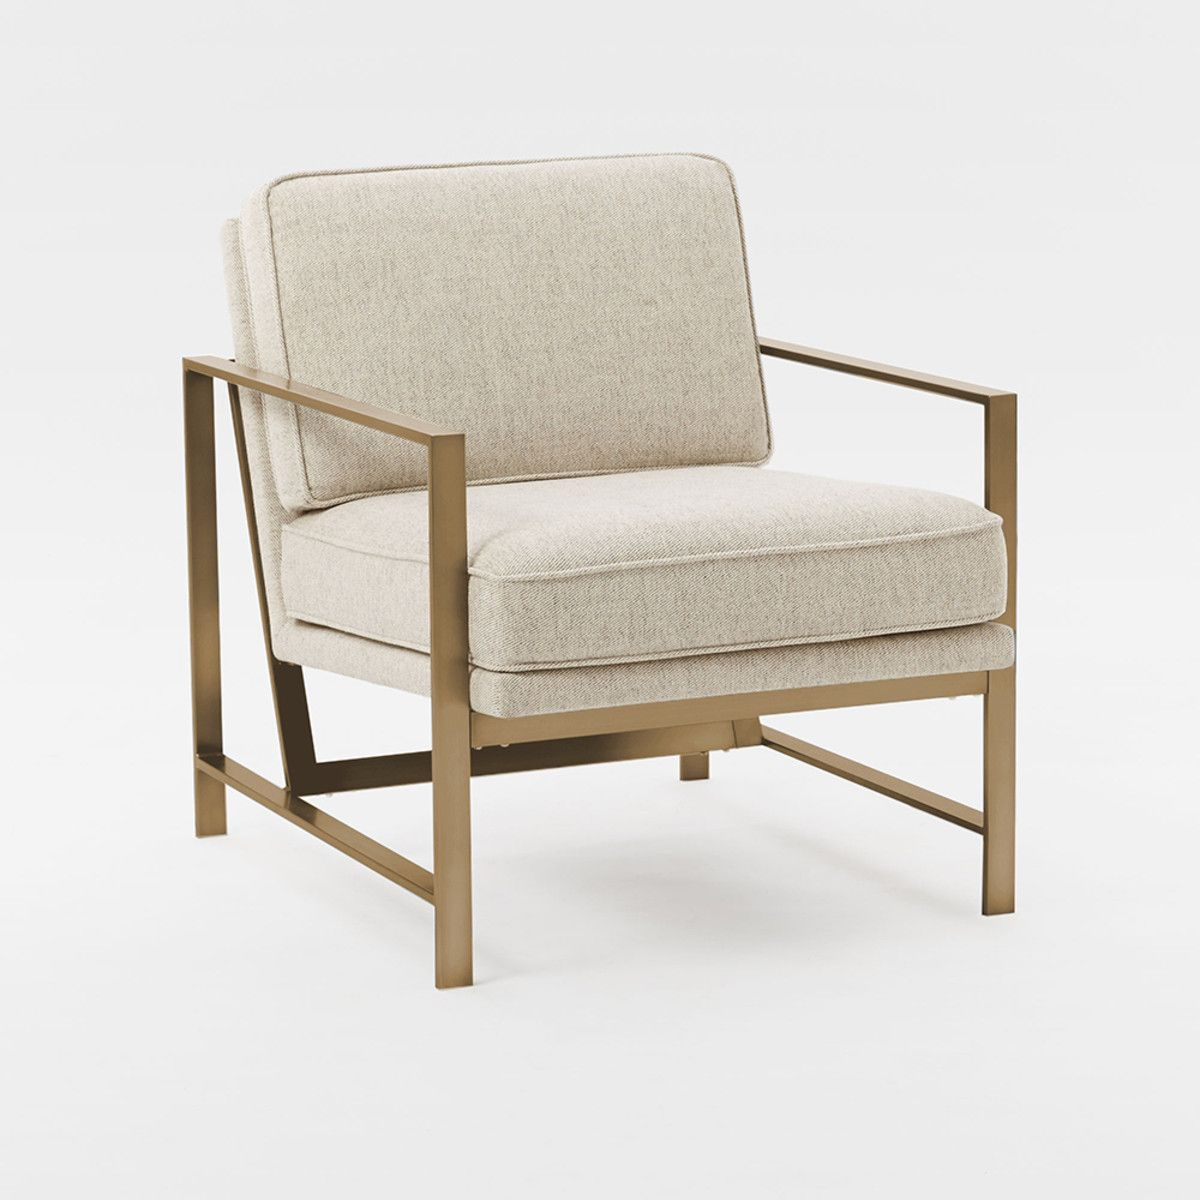 West Elm Chairs: West Elm - Metal Frame Upholstered Chair - Stone